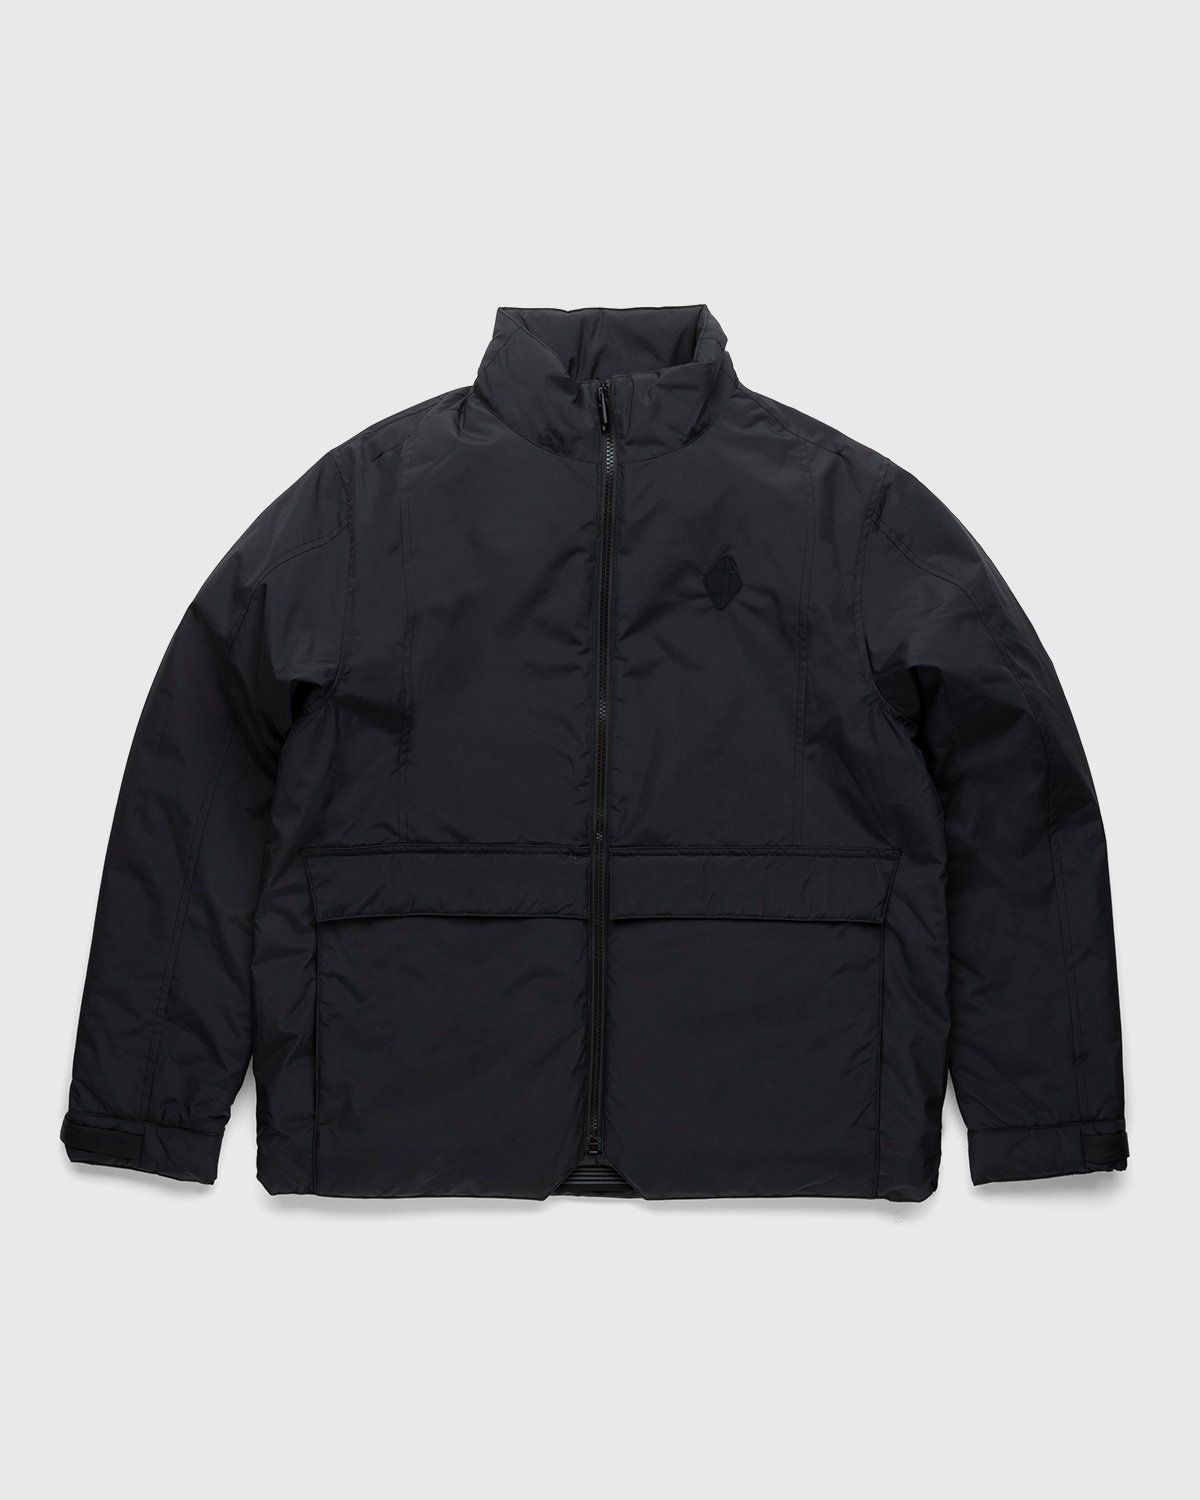 A-COLD-WALL* – Technical Bomber Black - Image 1